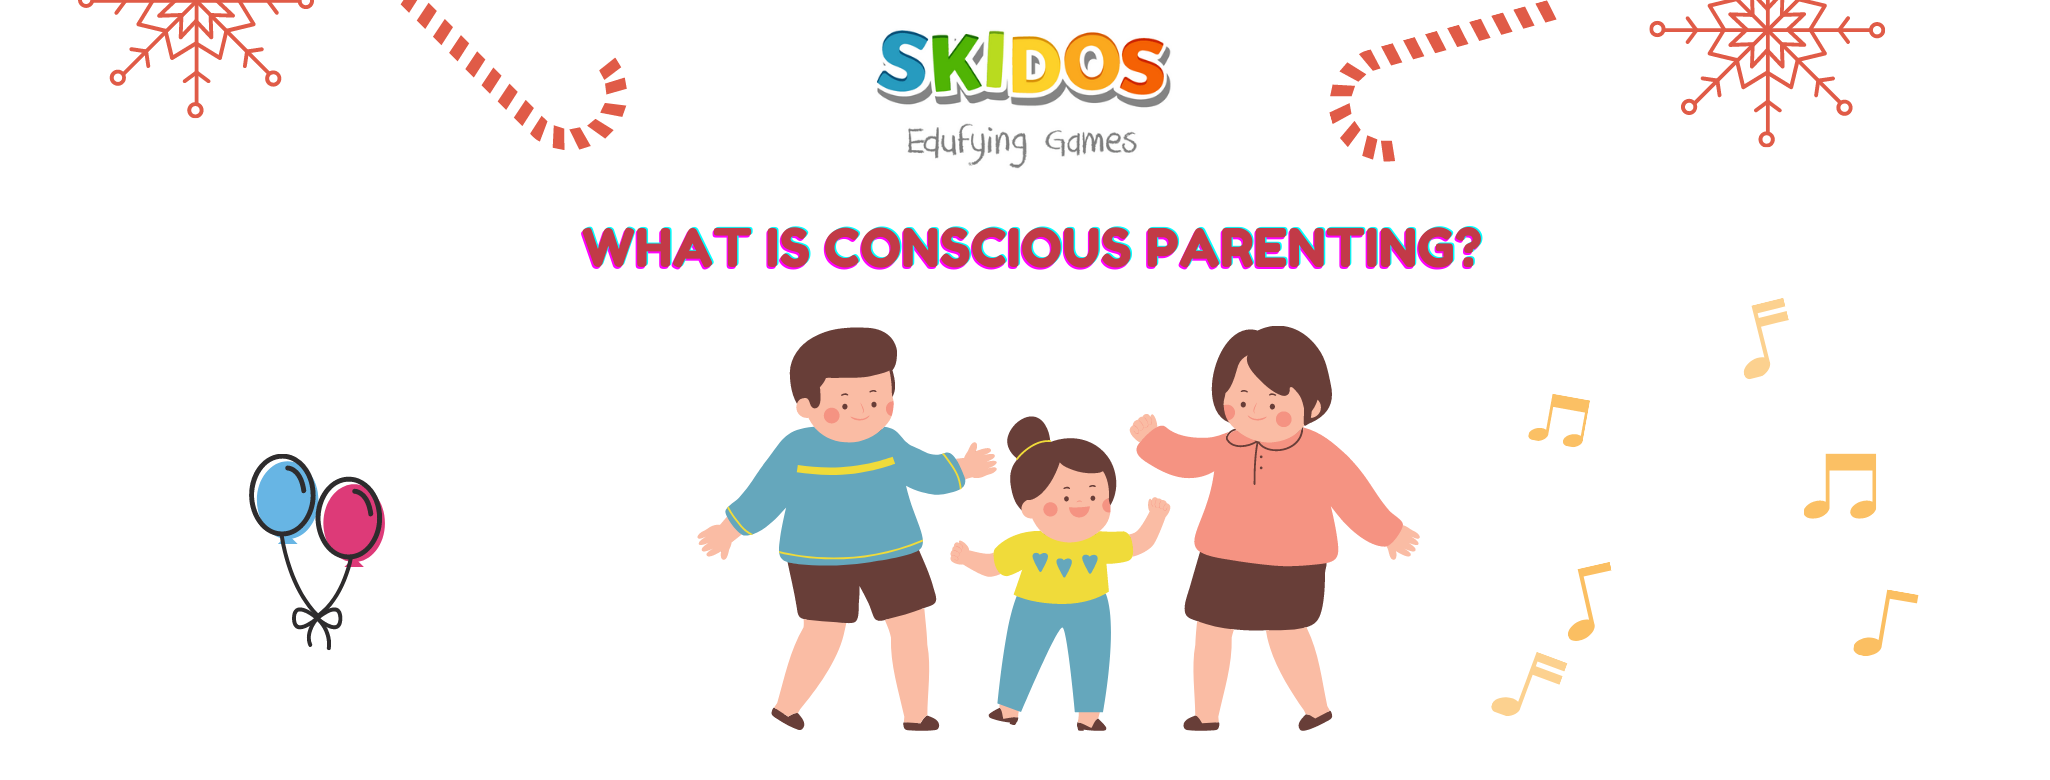 What Is Conscious Parenting and 7 Benefits of That?